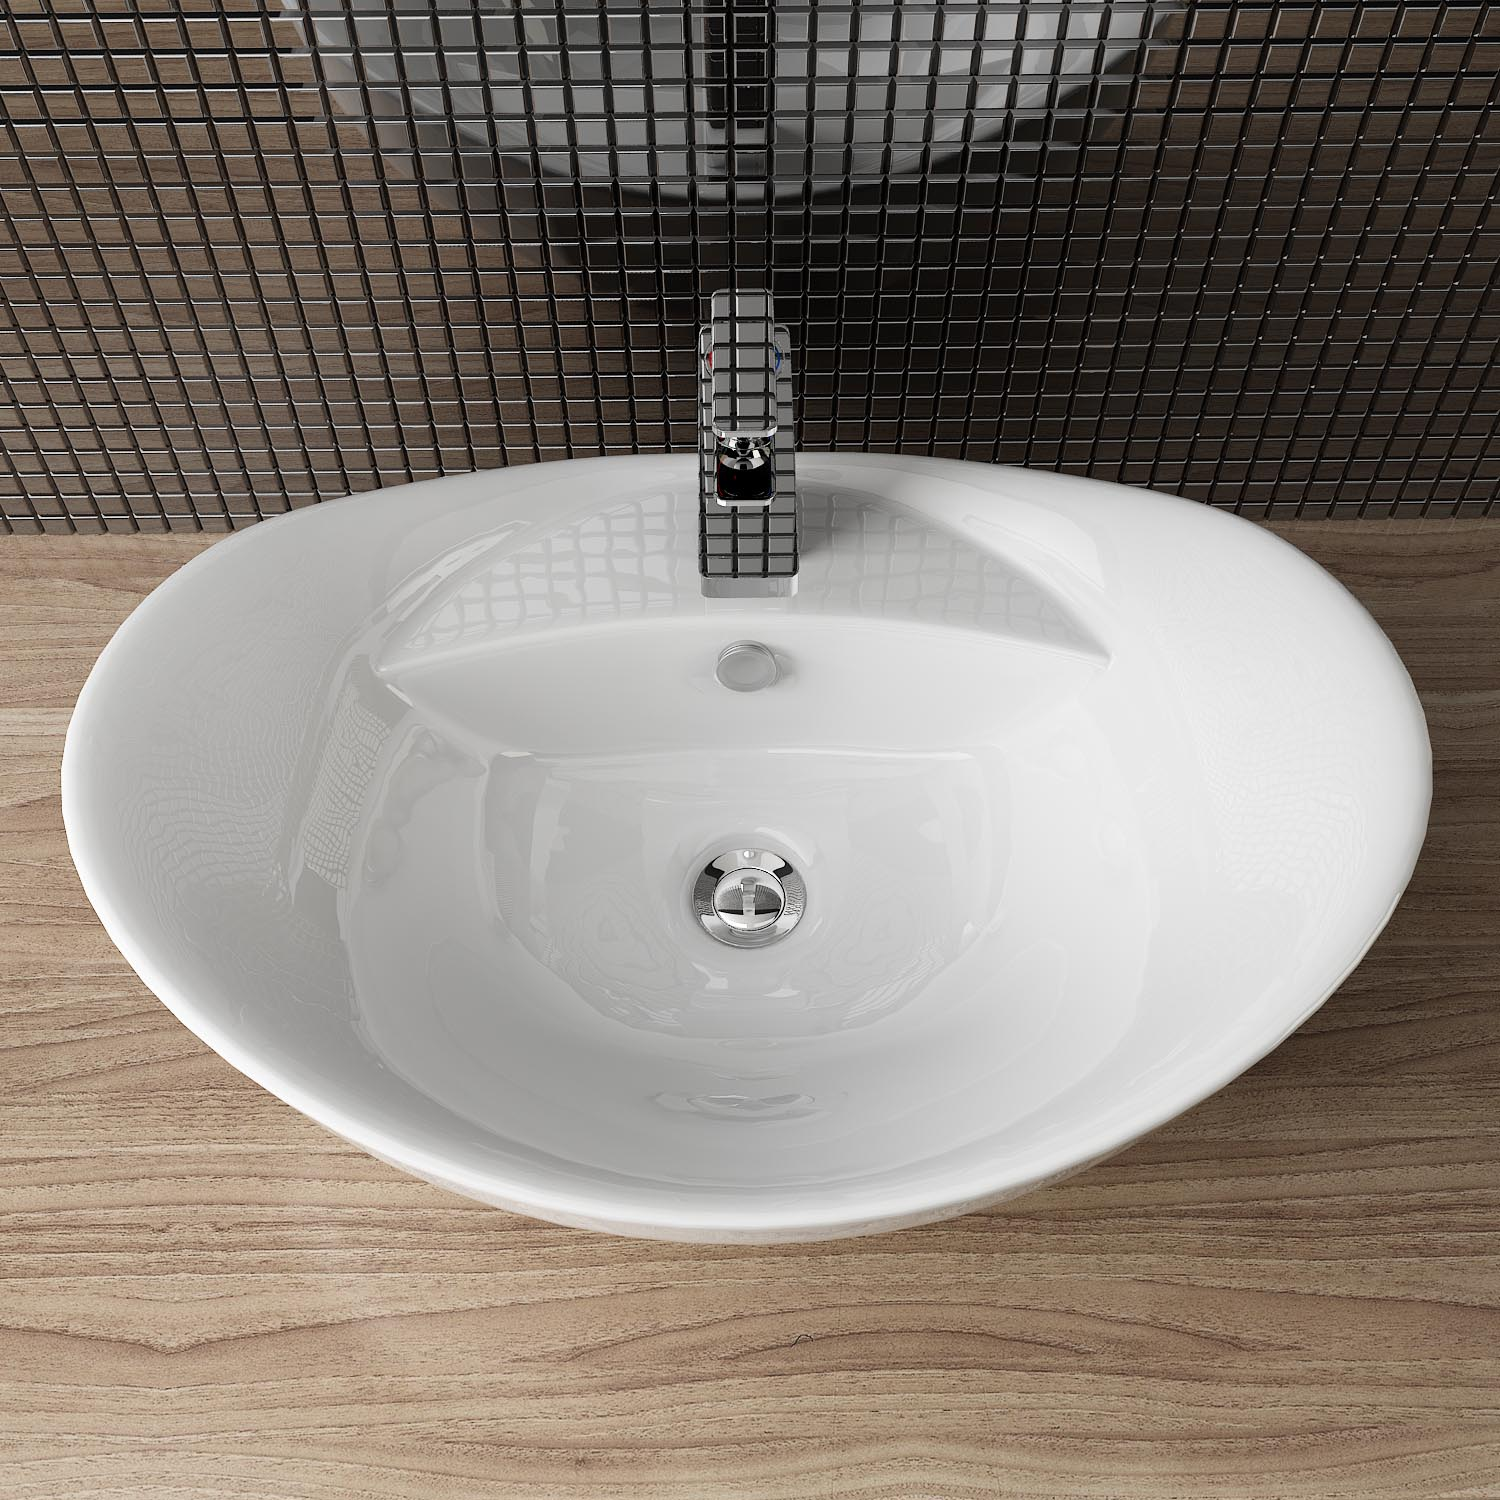 Aufsatzwaschbecken Tisch Design Ceramic Patch Sink & Table Hand Wash Basin Guest Wc A82 | Ebay